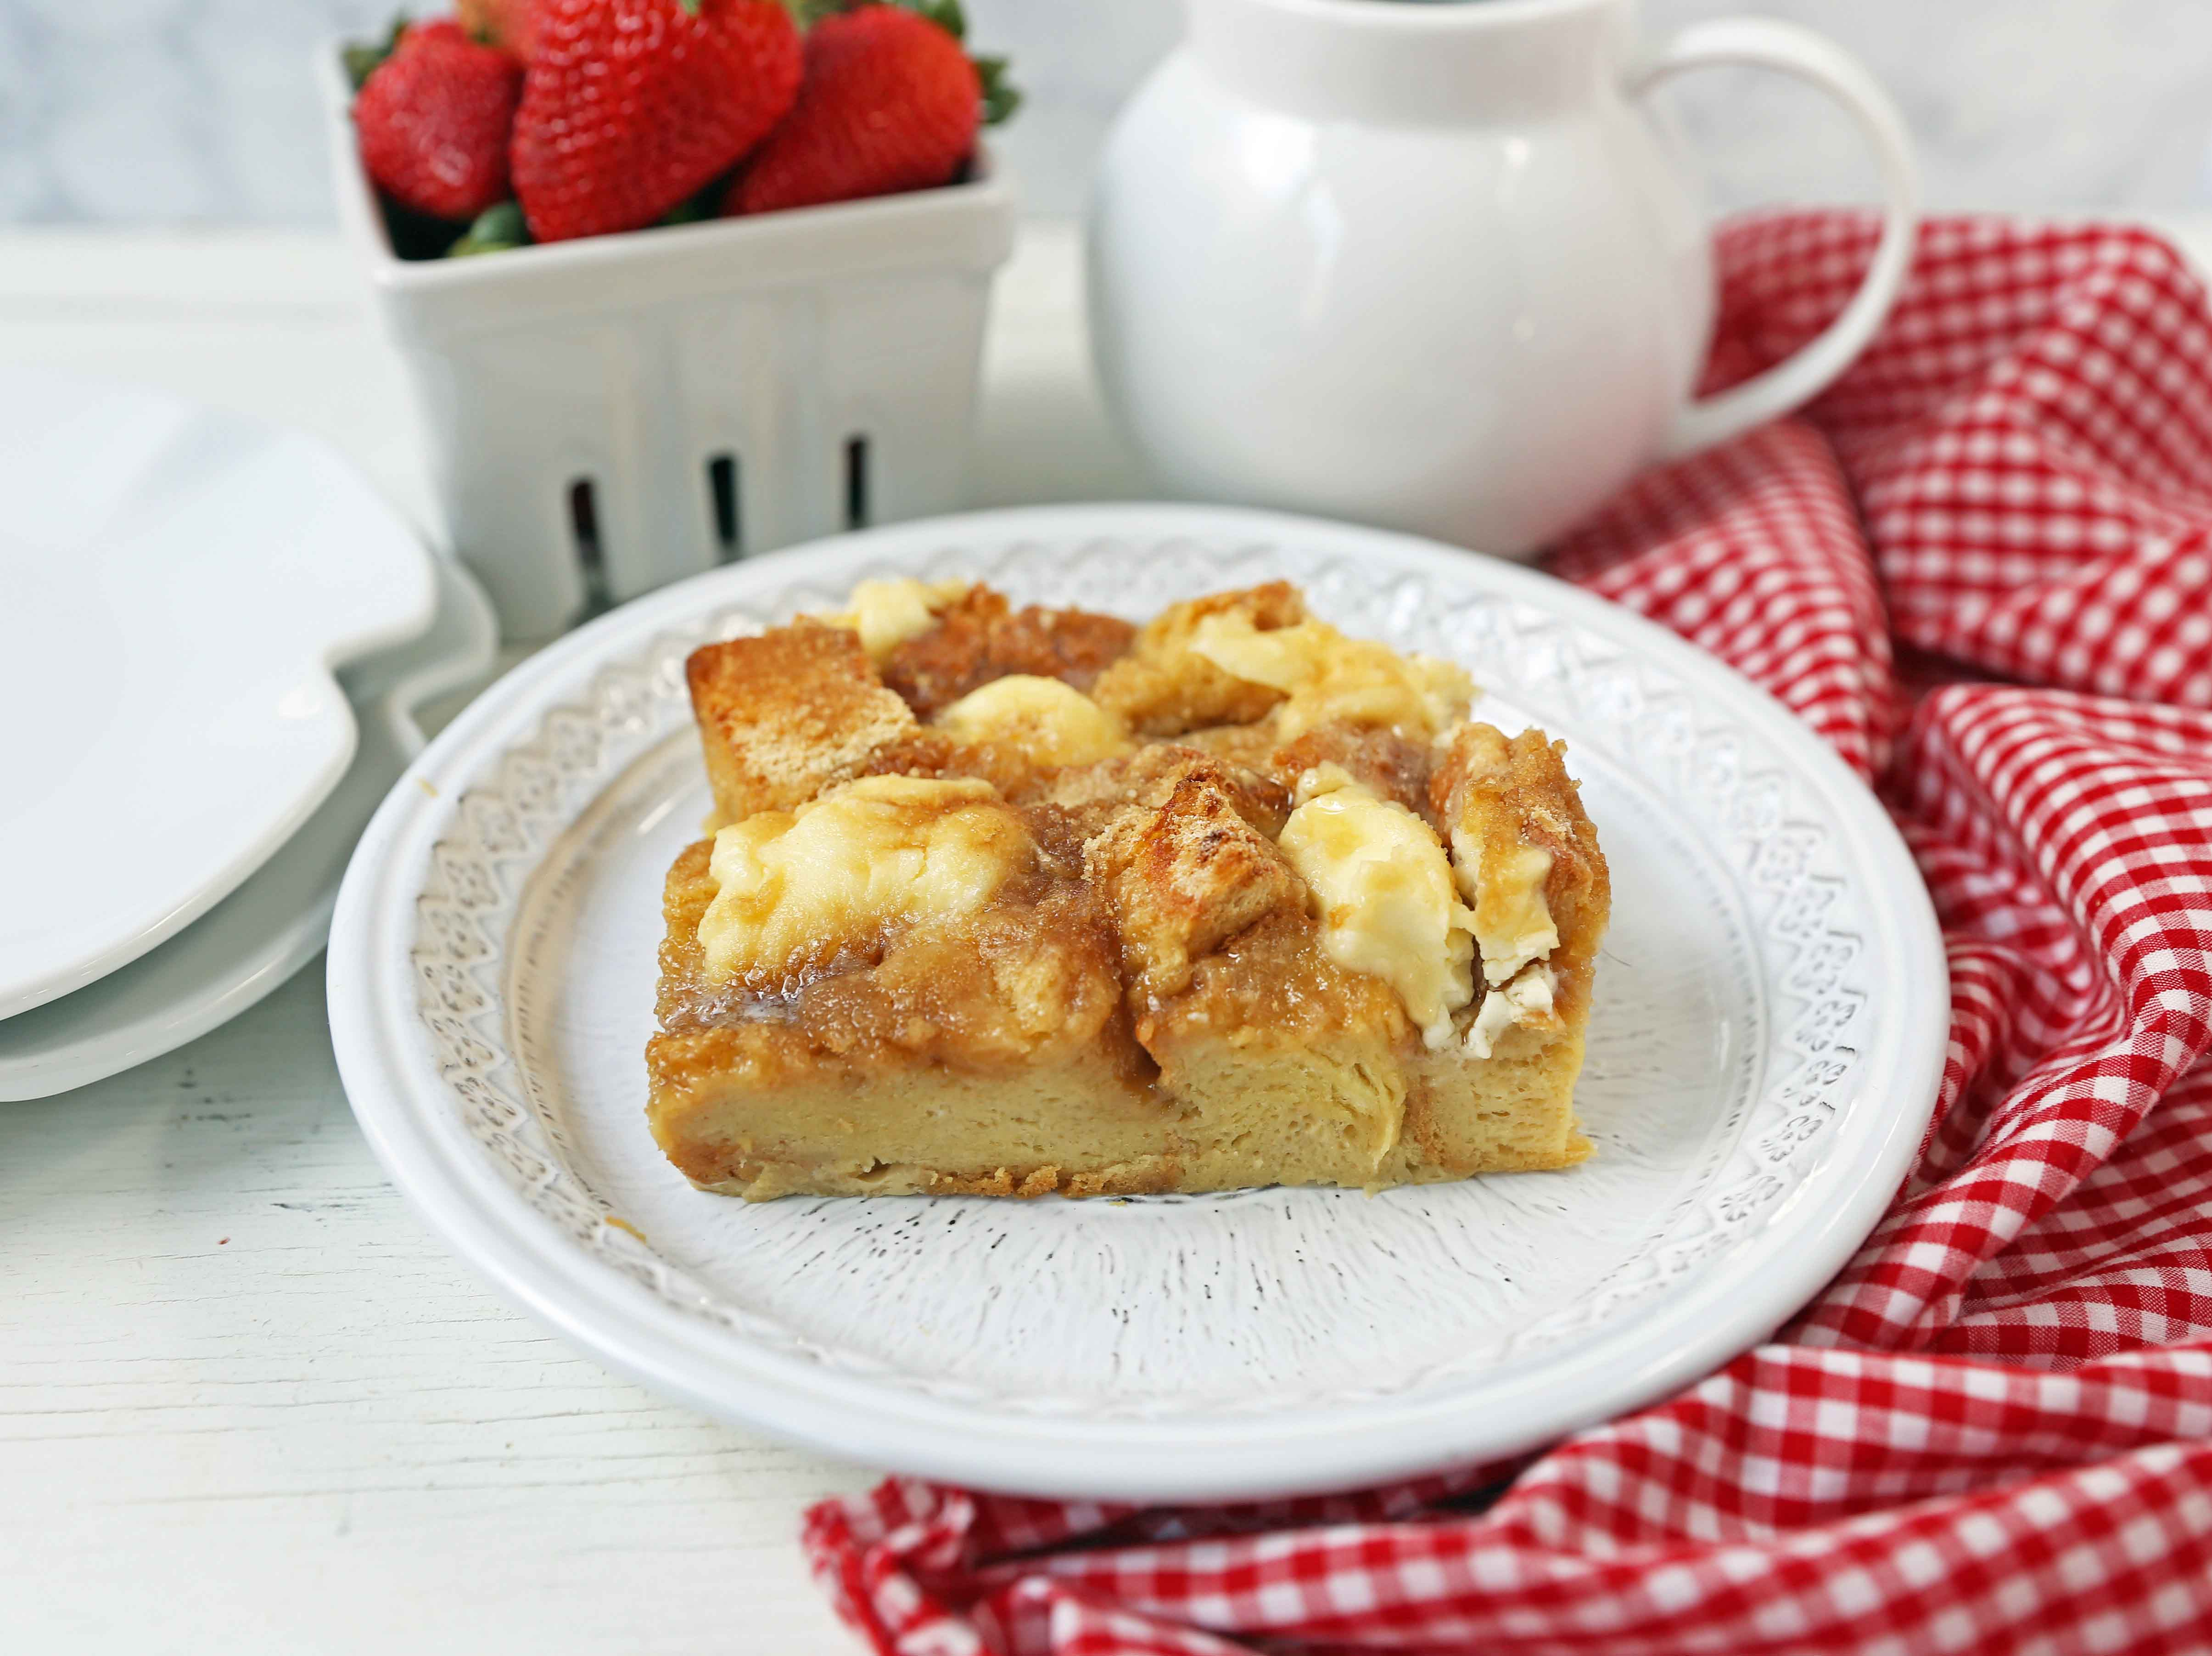 Baked French Toast Casserole. Challah bread soaked in a rich sweet custard with sweet cream cheese and topped with a brown sugar streusel topping. An easy overnight french toast recipe. www.modernhoney.com #frenchtoast #bakedfrenchtoast #breakfast #overnightfrenchtoast